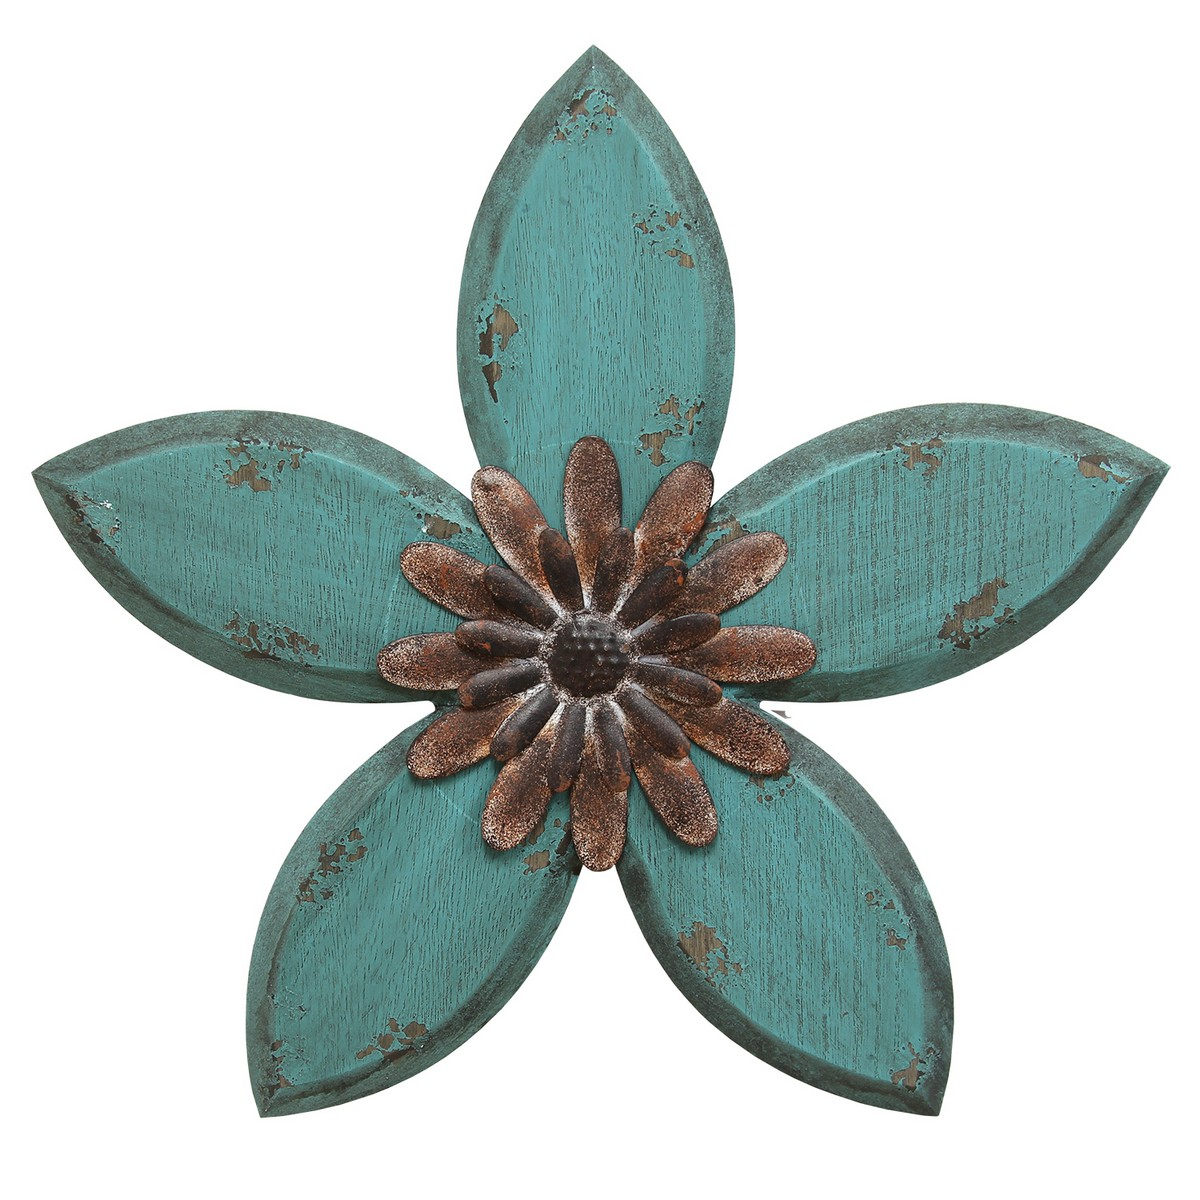 Vintage Teal Wall Decor : Stratton home decor antique flower wall teal red